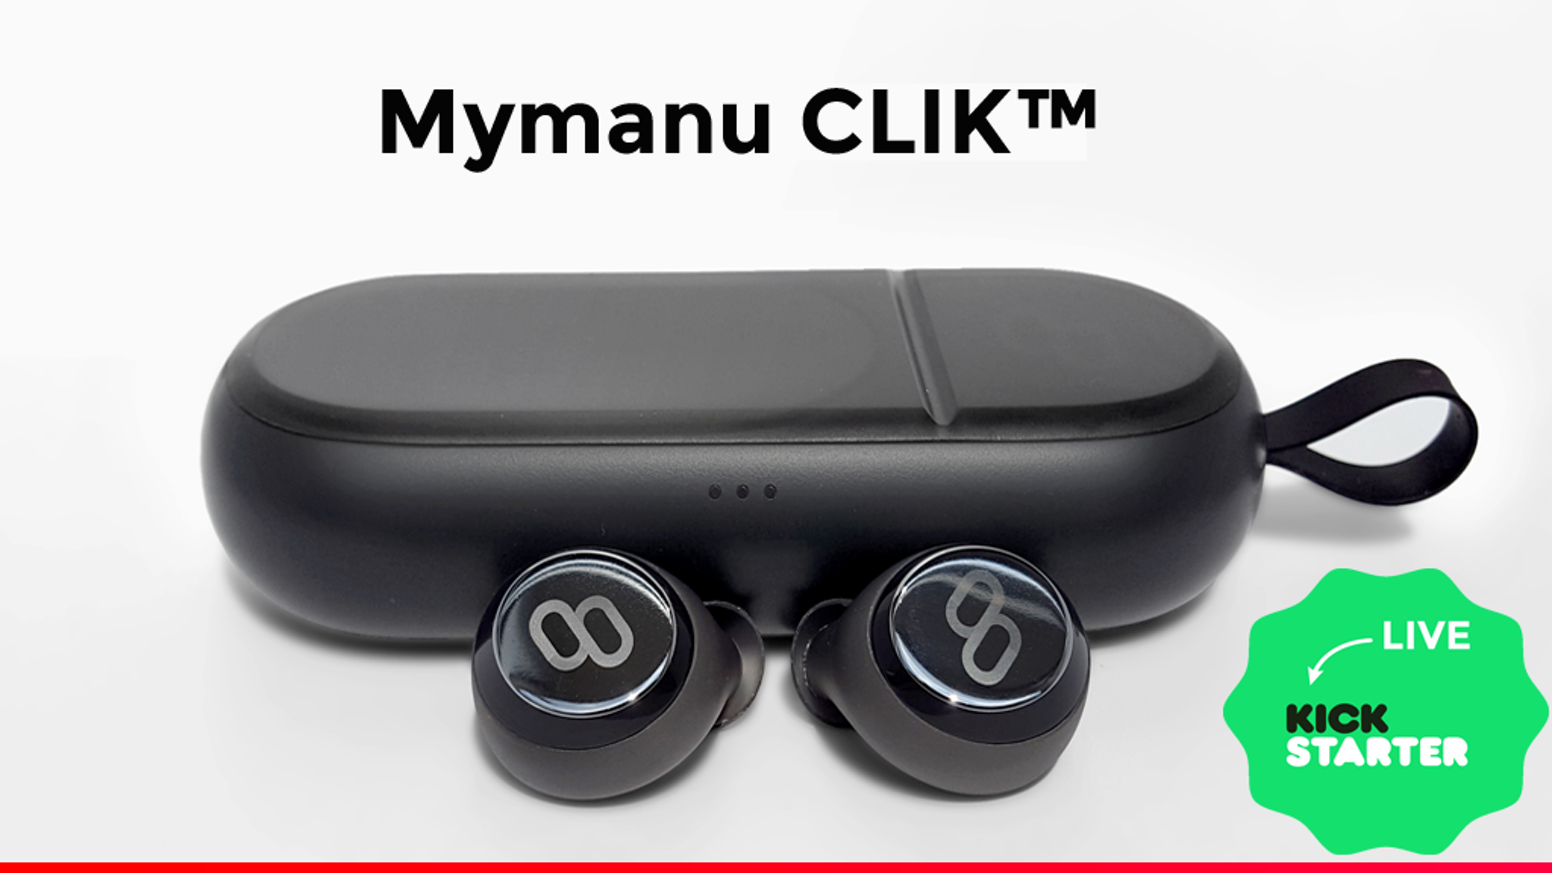 The World S First Proven Truly Wireless Earbuds That Translates Your Voice In Real Time With